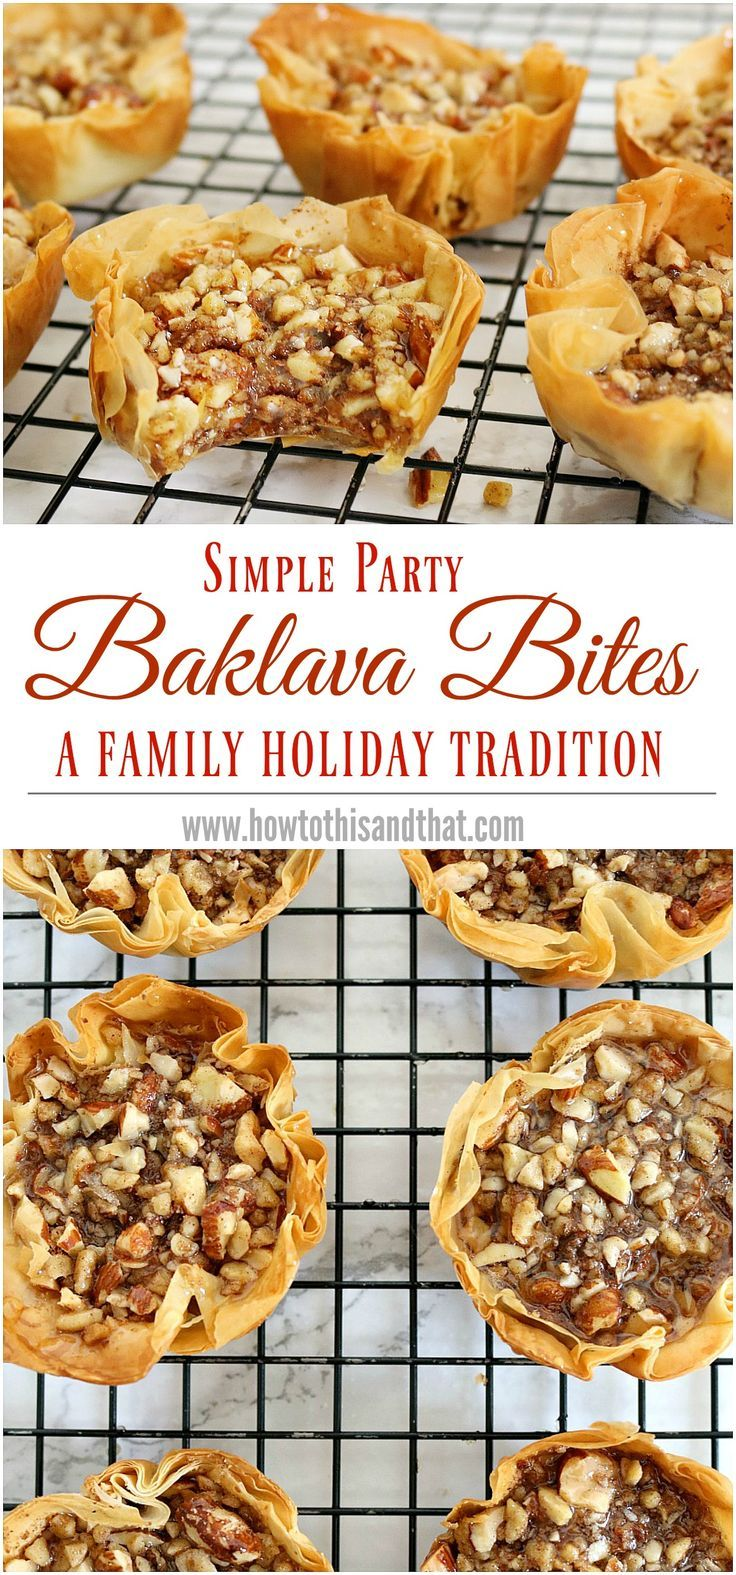 Easy Baklava Recipe 15 Minute Bites Recipe Baklava Recipe Baklava Recipe Easy Traditional Baklava Recipe